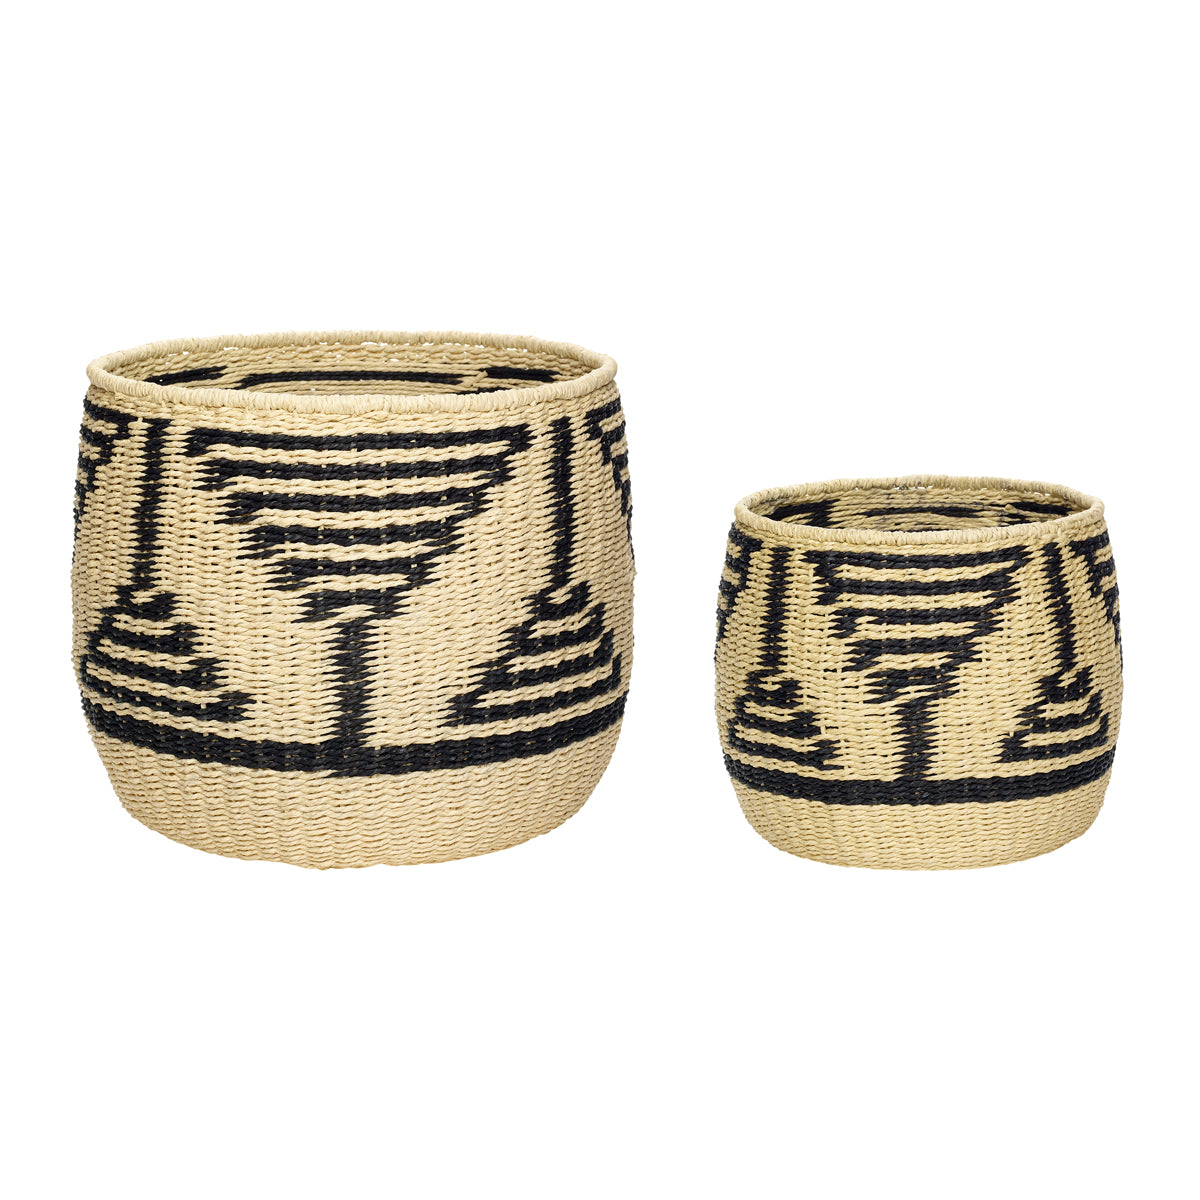 Basket black/nature Hübsch african storage